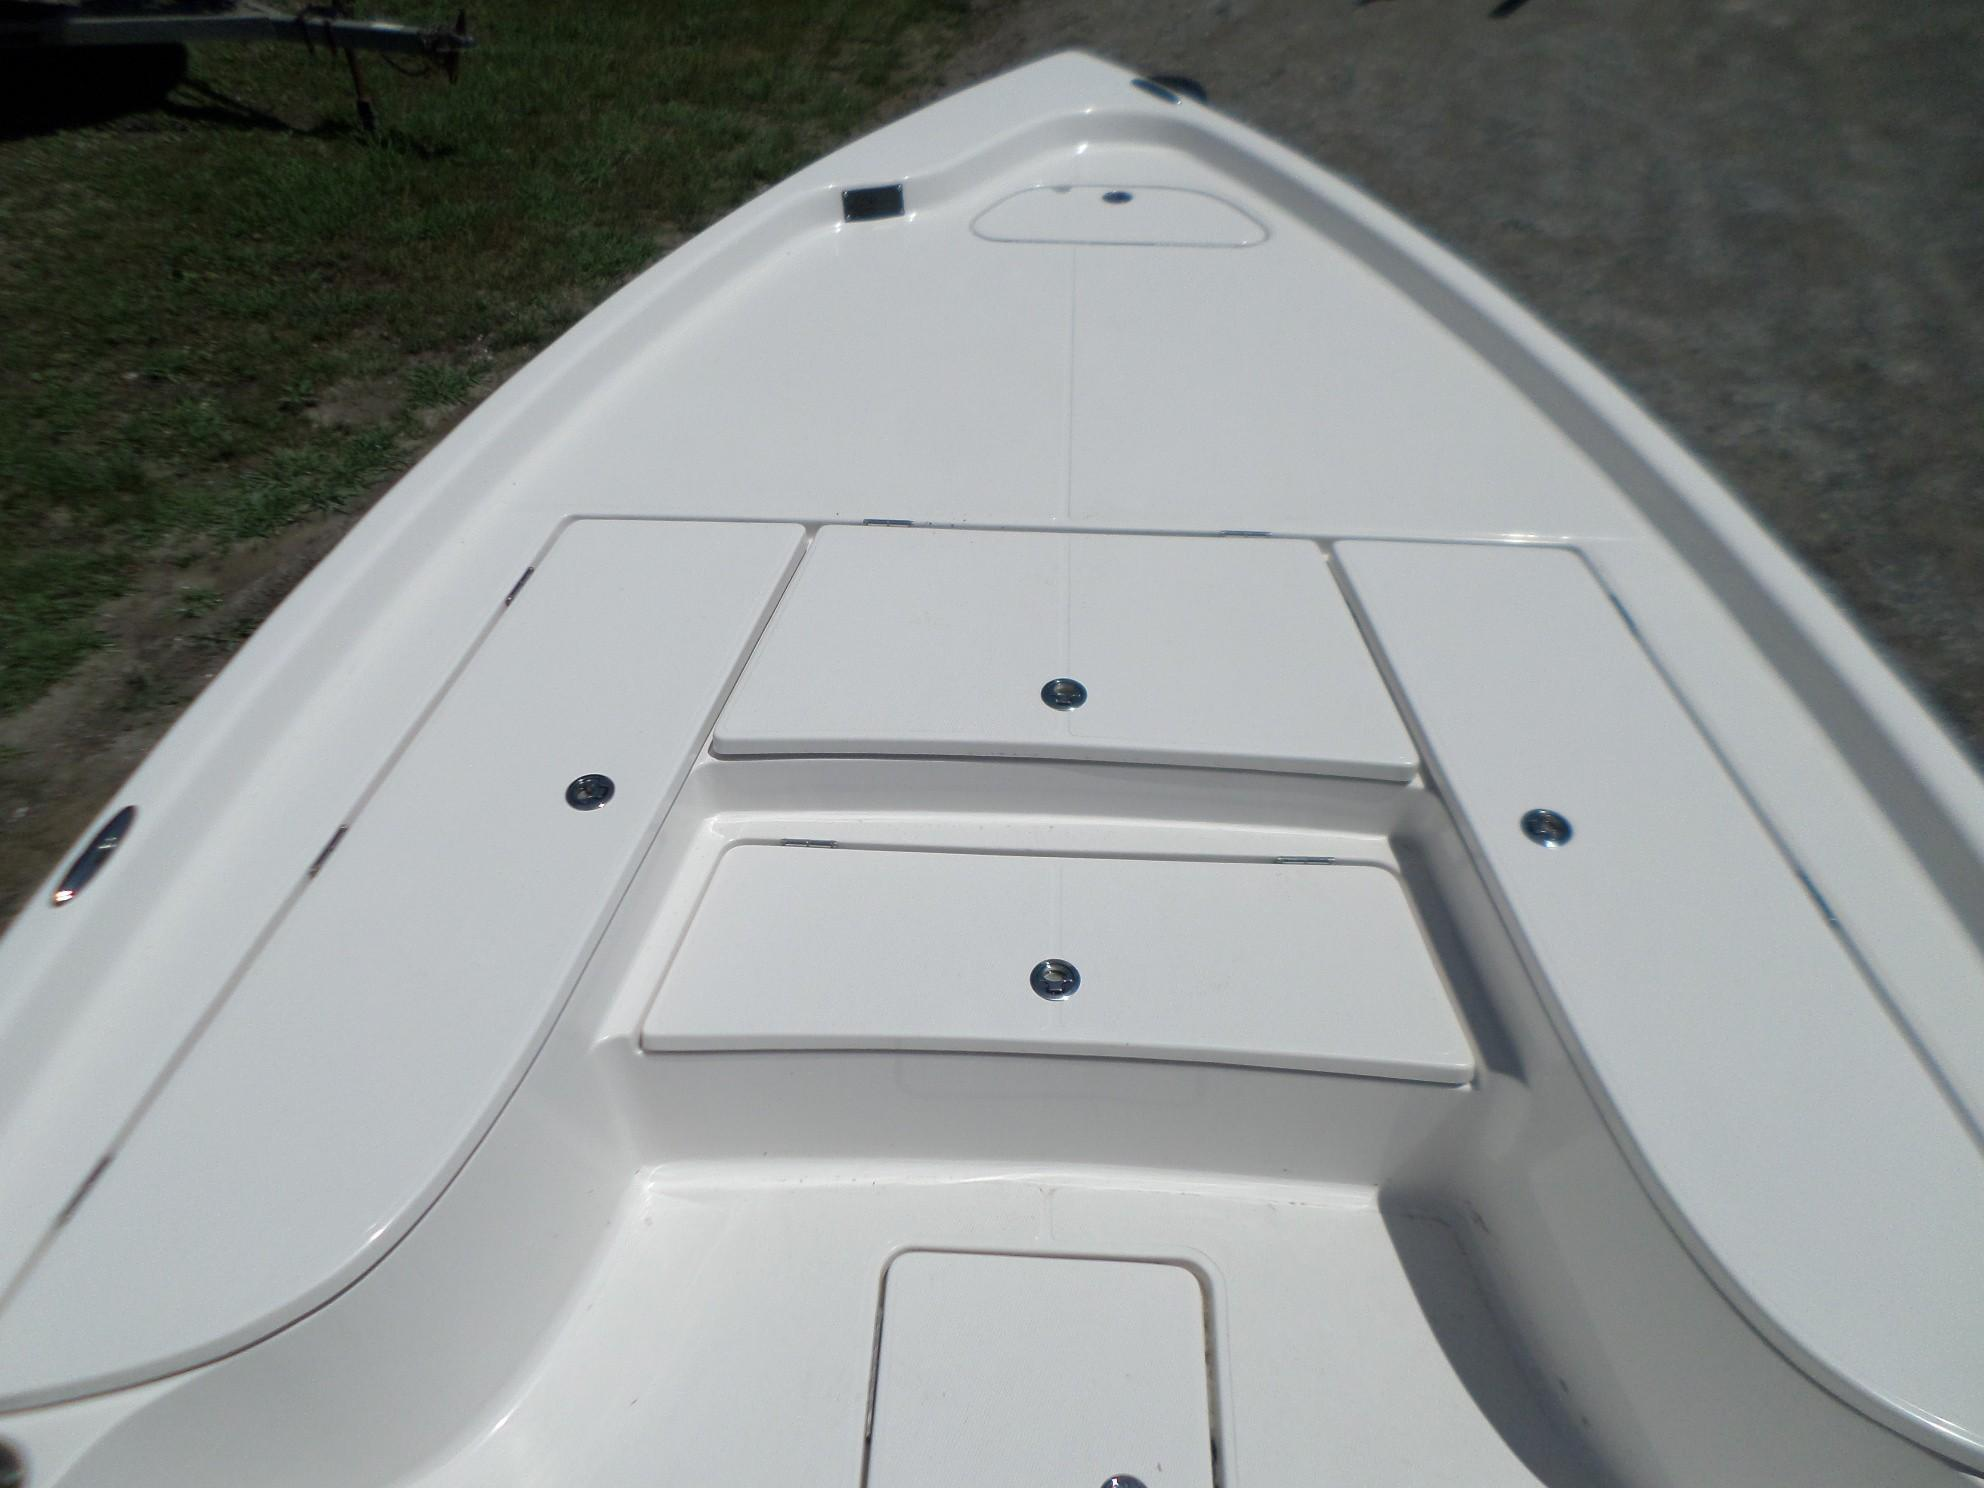 New  2018 24.42' Blue Wave 2400 PureBay Bay Boat in Slidell, Louisiana